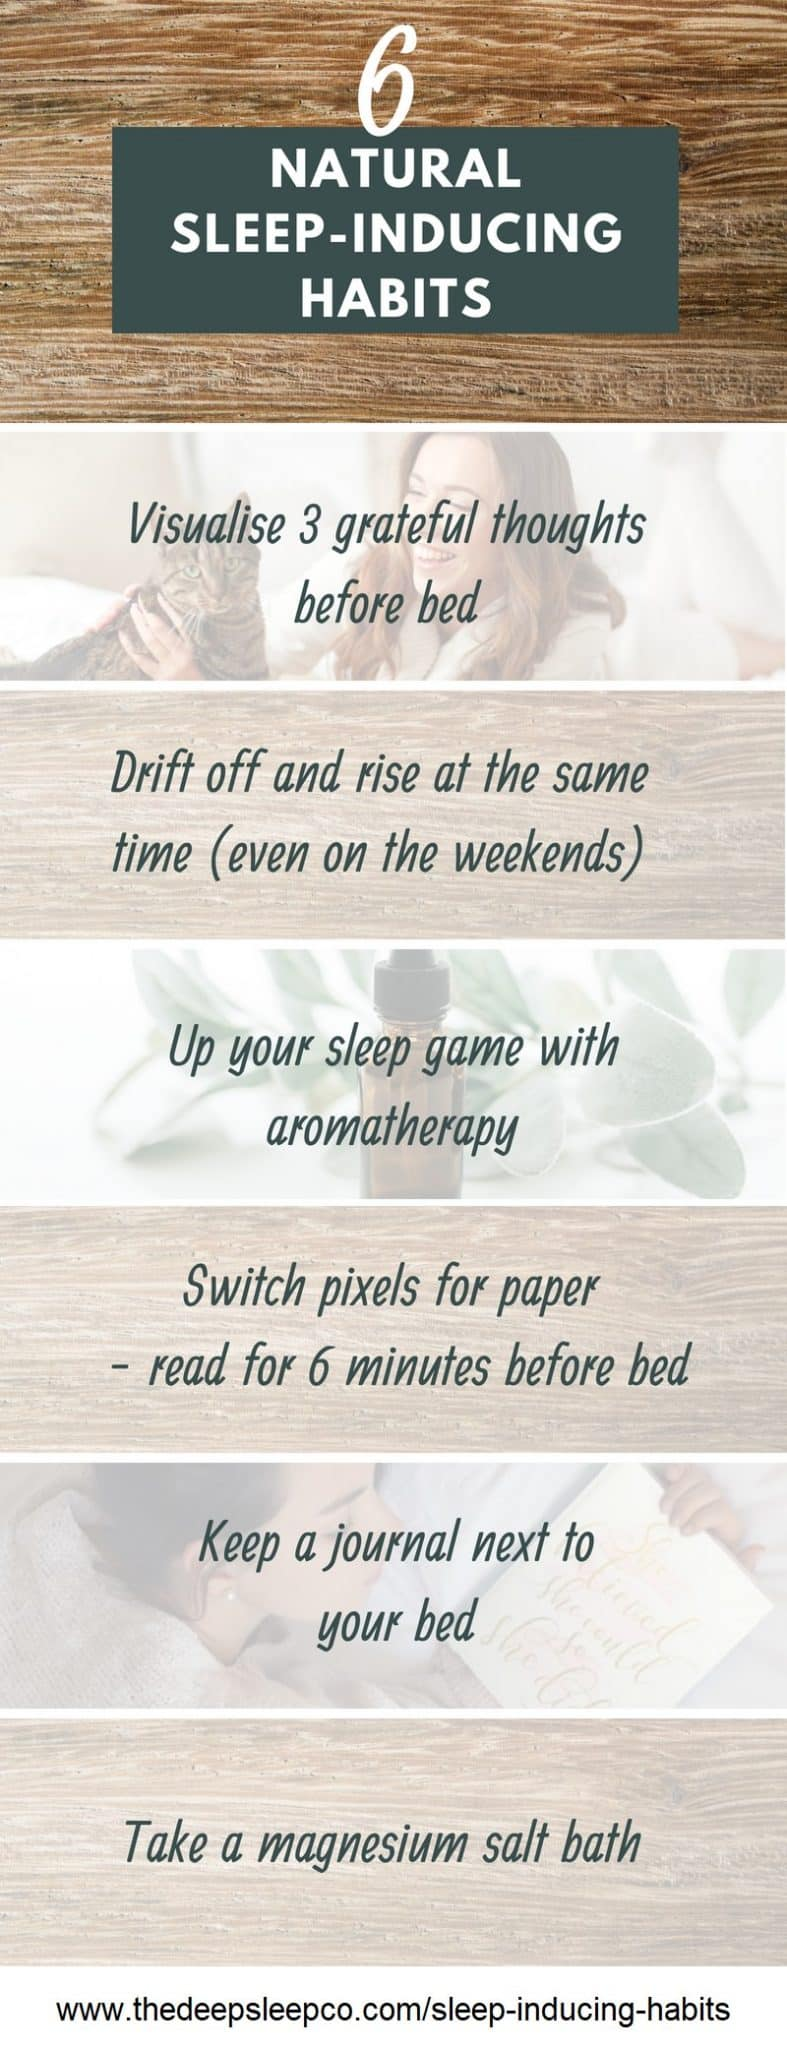 Natural Sleep-Inducing Habits